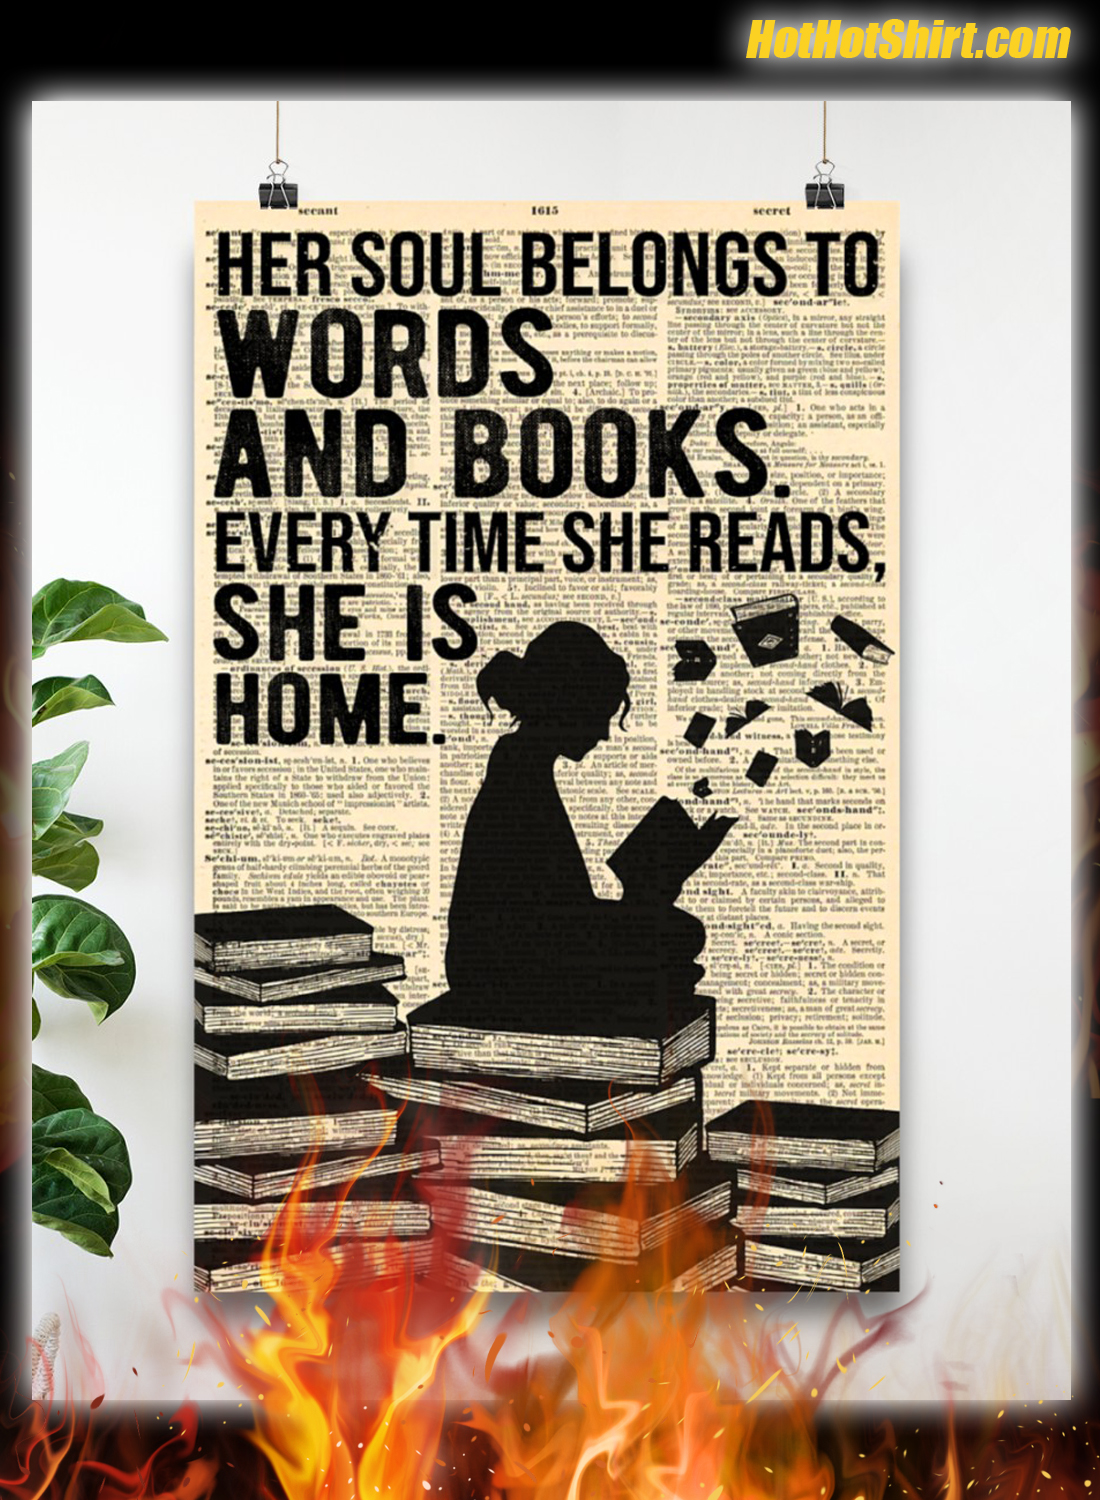 Her Soul Belong To Words and Books Every Time She Reads Poster 3